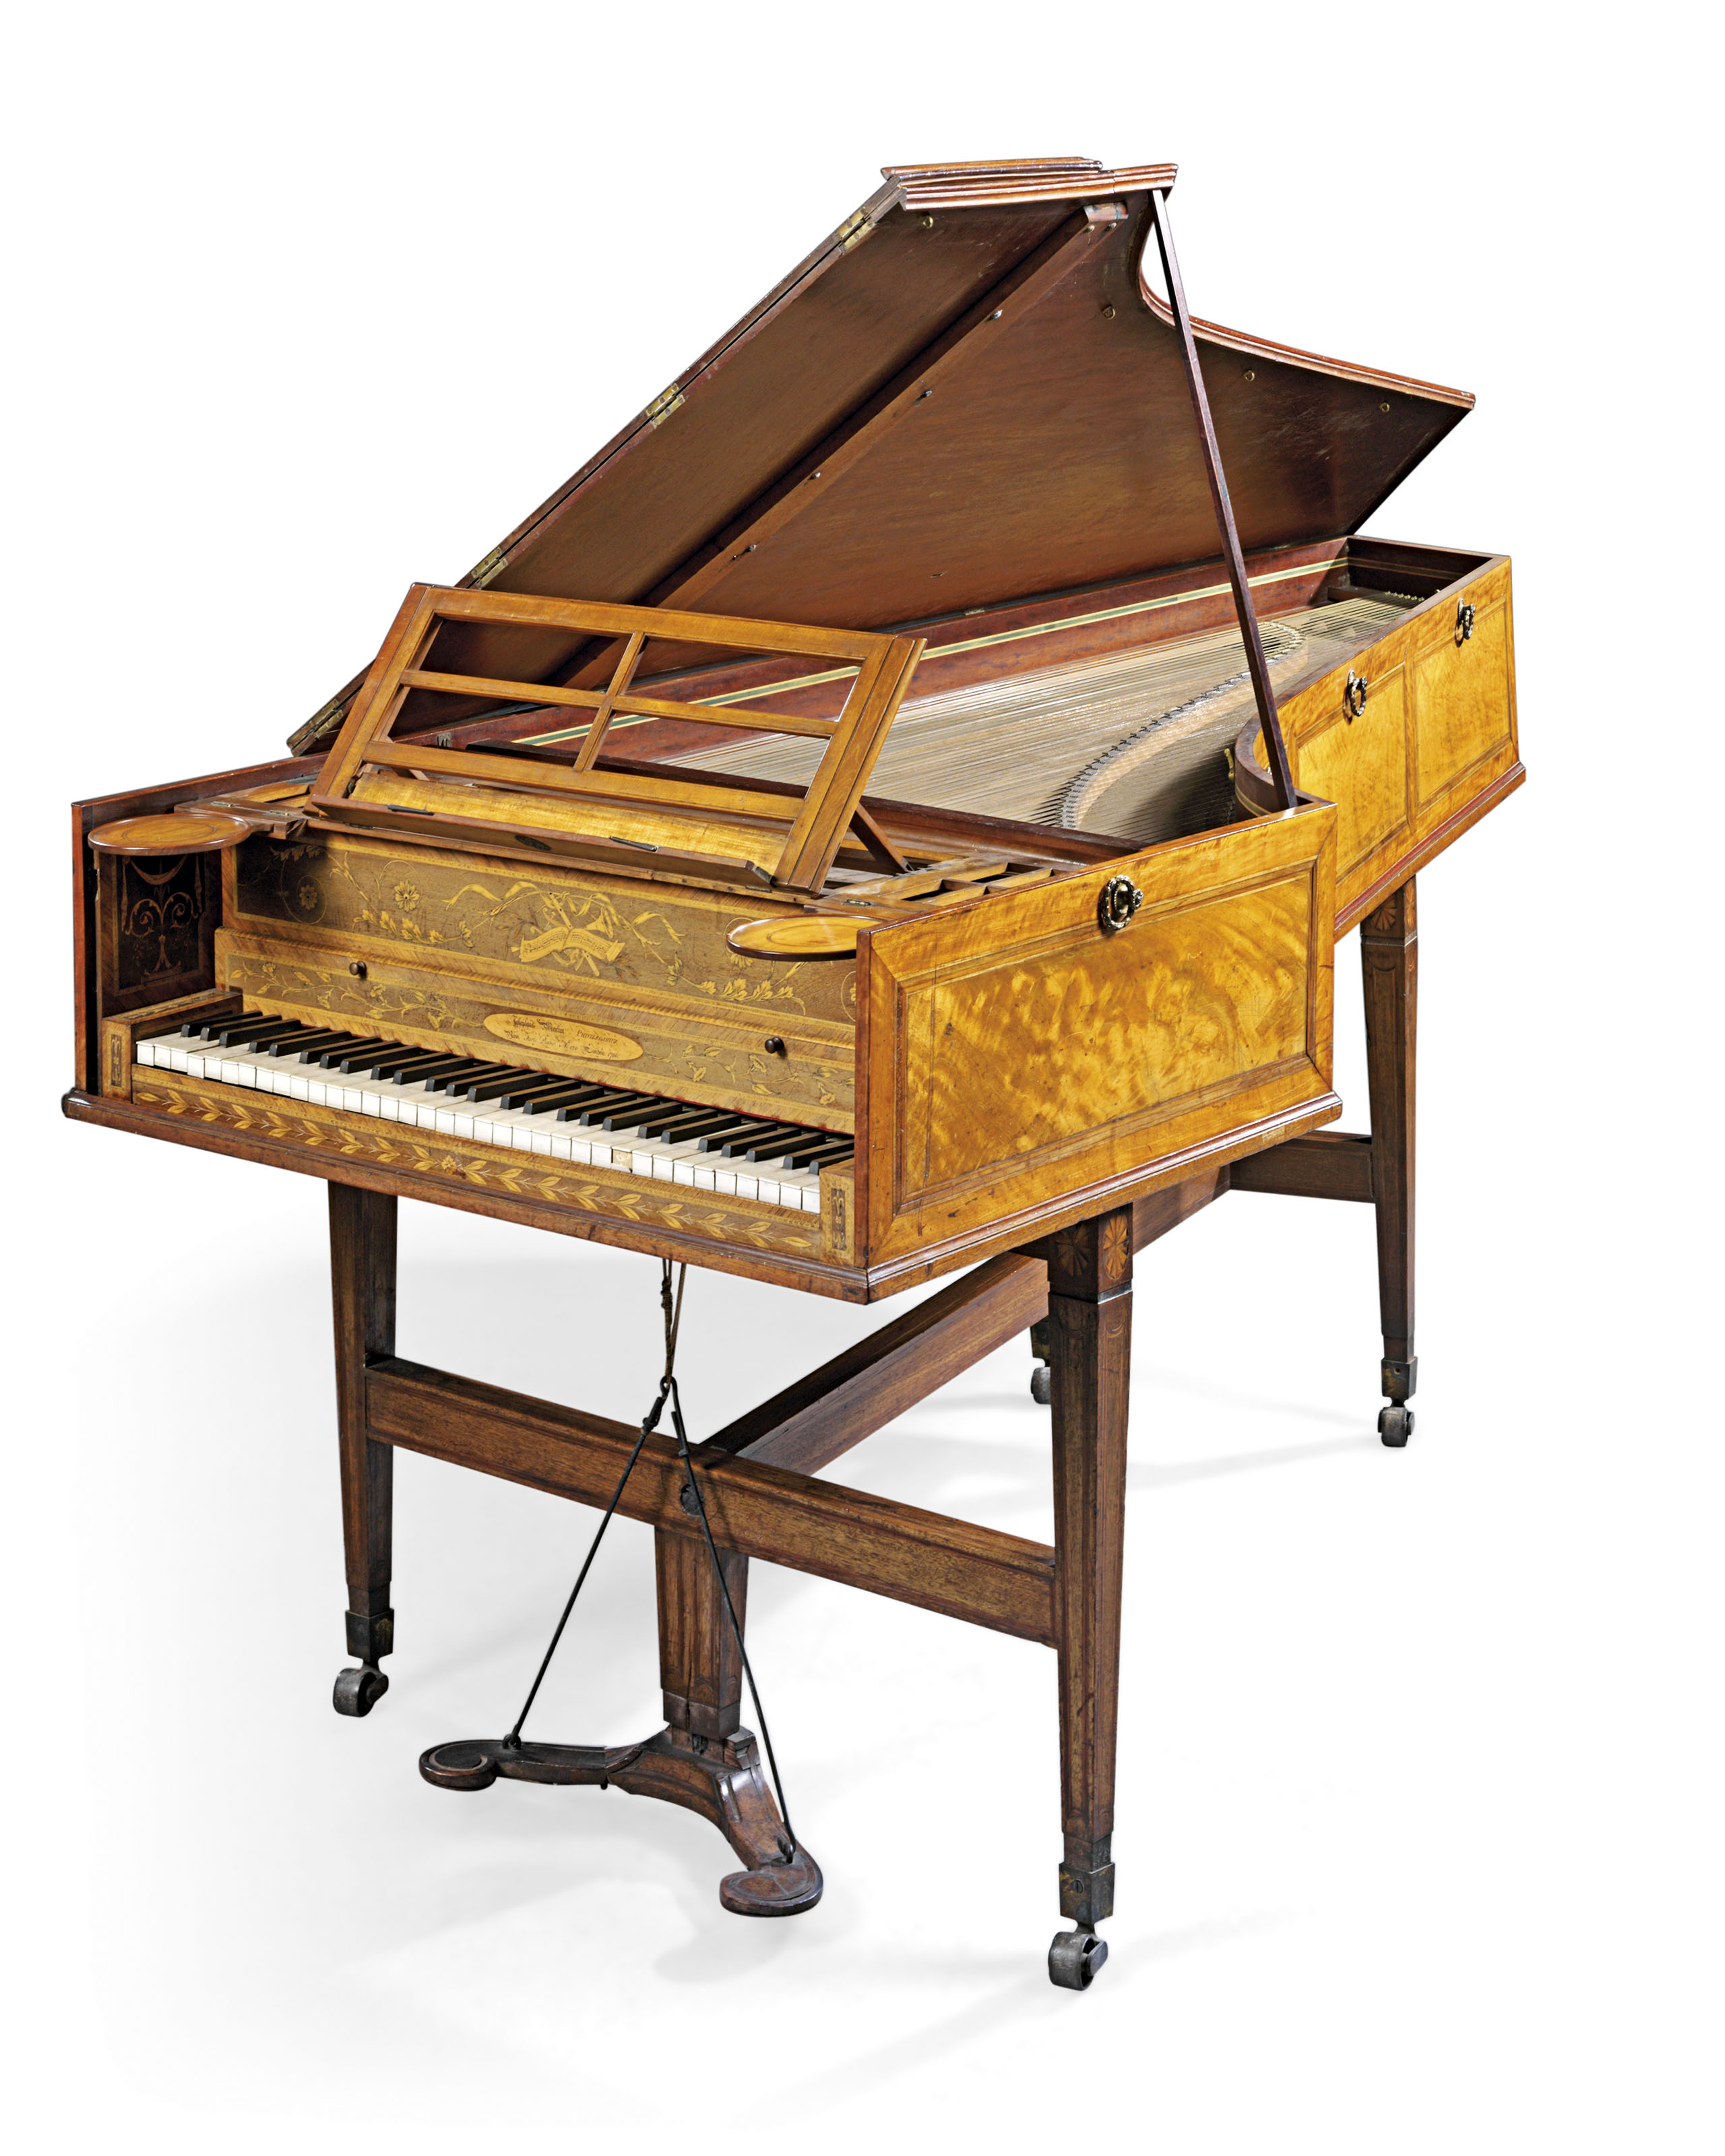 A GEORGE III HOLLY AND WENGE-INLAID, SATINWOOD AND TULIPWOOD-CROSSBANDED MAHOGANY GRAND PIANO WITH IVORY AND EBONY KEY COVERINGS INCORPORATING MERLIN'S PATENT 'FOUR UNISON' STRINGING AND DOWN-STRIKING ACTION